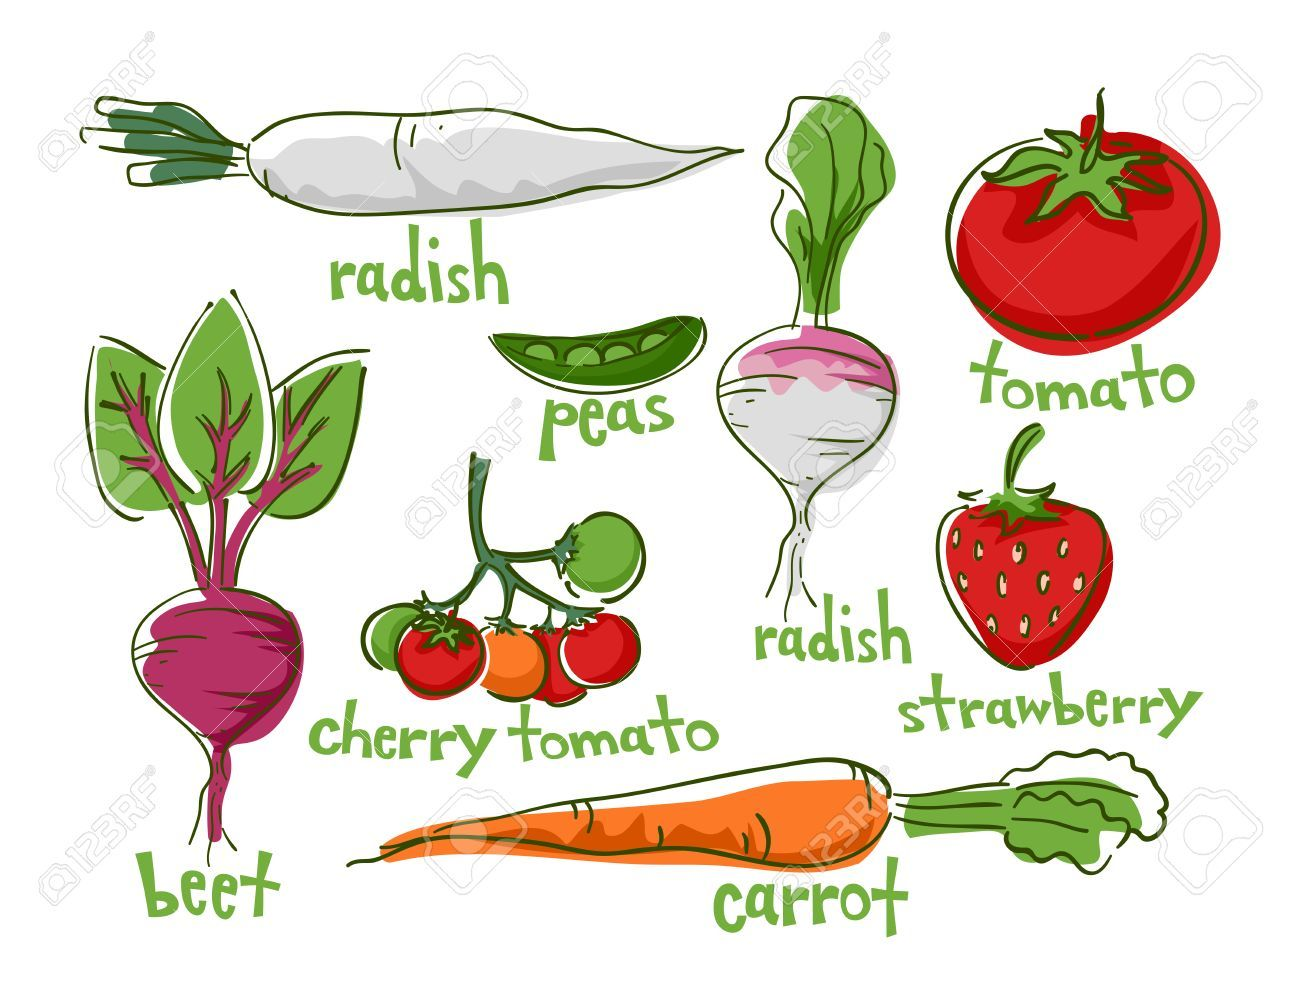 Clipart vegetables easy. Fruits to grow portal